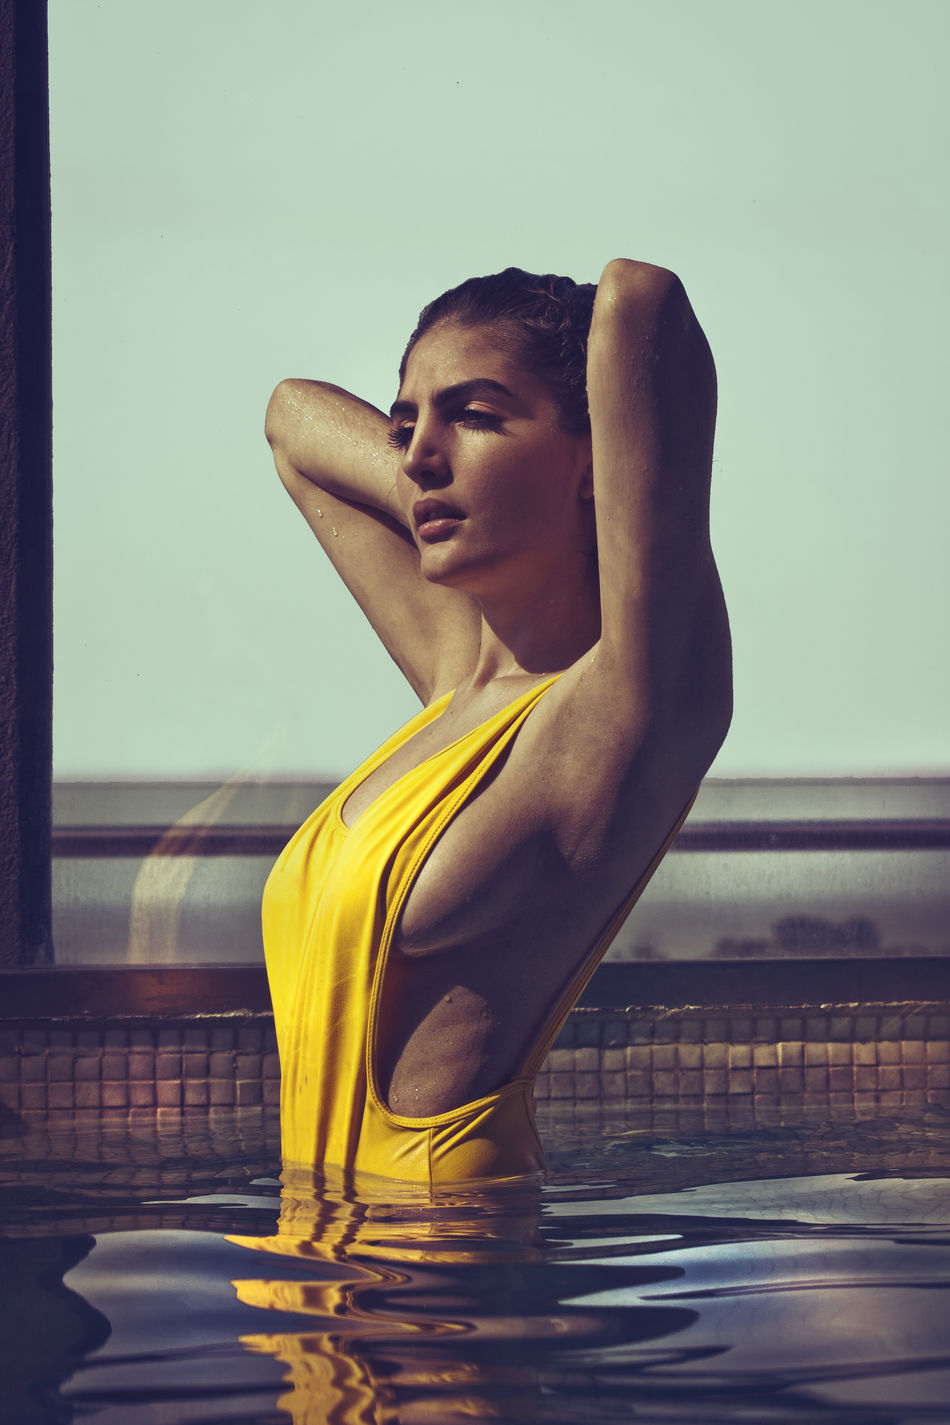 Low Angle View Yellow Young Adult Relaxation Indoors  Auto Post Production Filter Contemplation Young Women Sportswear Medium-length Hair Focus On Foreground Brunette Girl  Brunette Beauty Fashion Femininity yellow swimsuit Leisure Activity Wetnwild WetLook Wethair  Wet Lifestyles Person Fashionable Casual Clothing Beauty